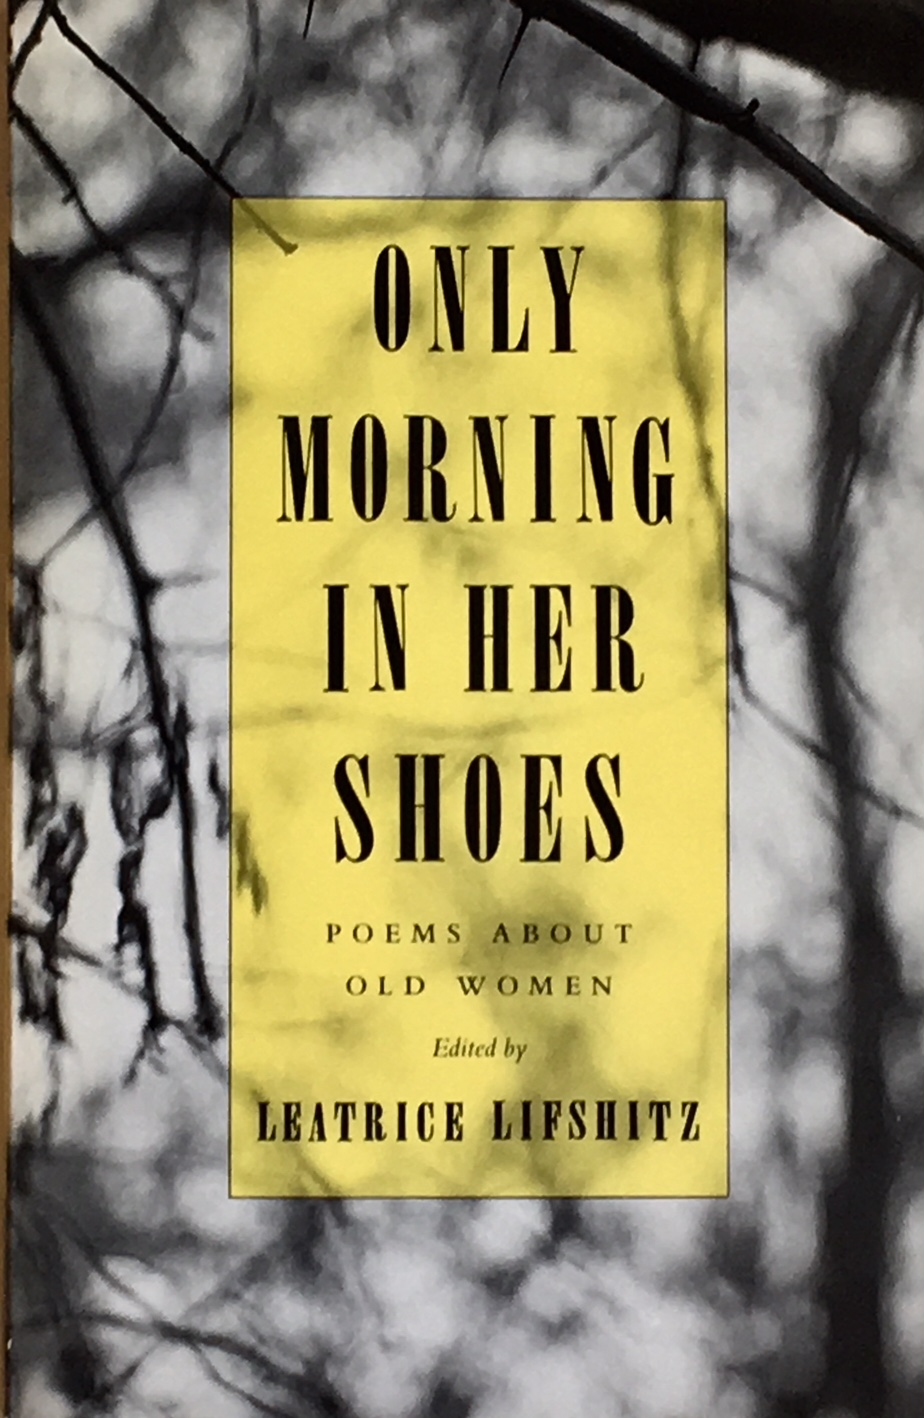 PhyllisHoge_Book_OnlyMorningInHerShoes.jpg